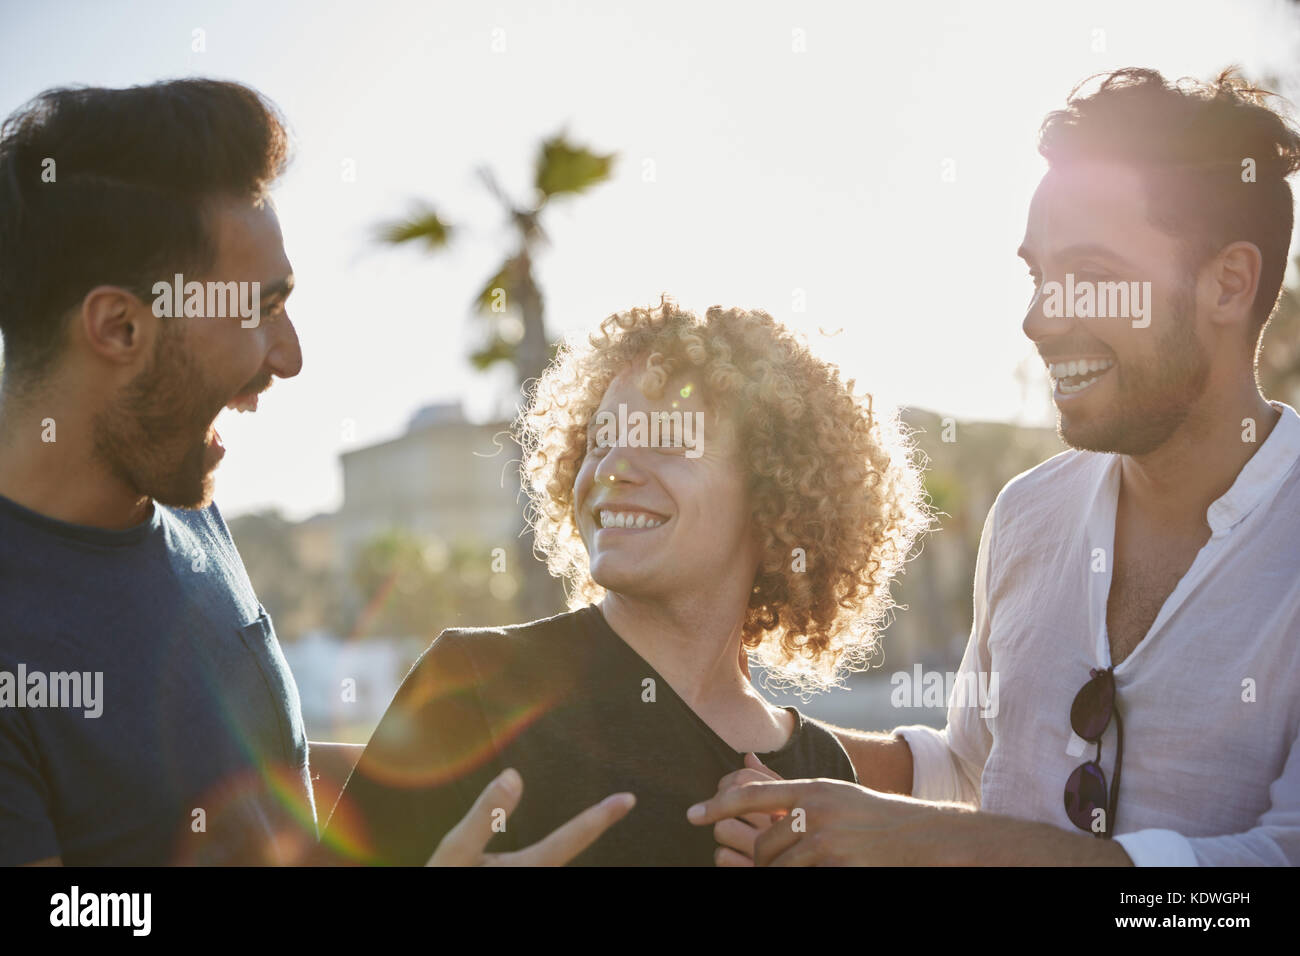 Portrait of three happy men standing together outside laughing - Stock Image